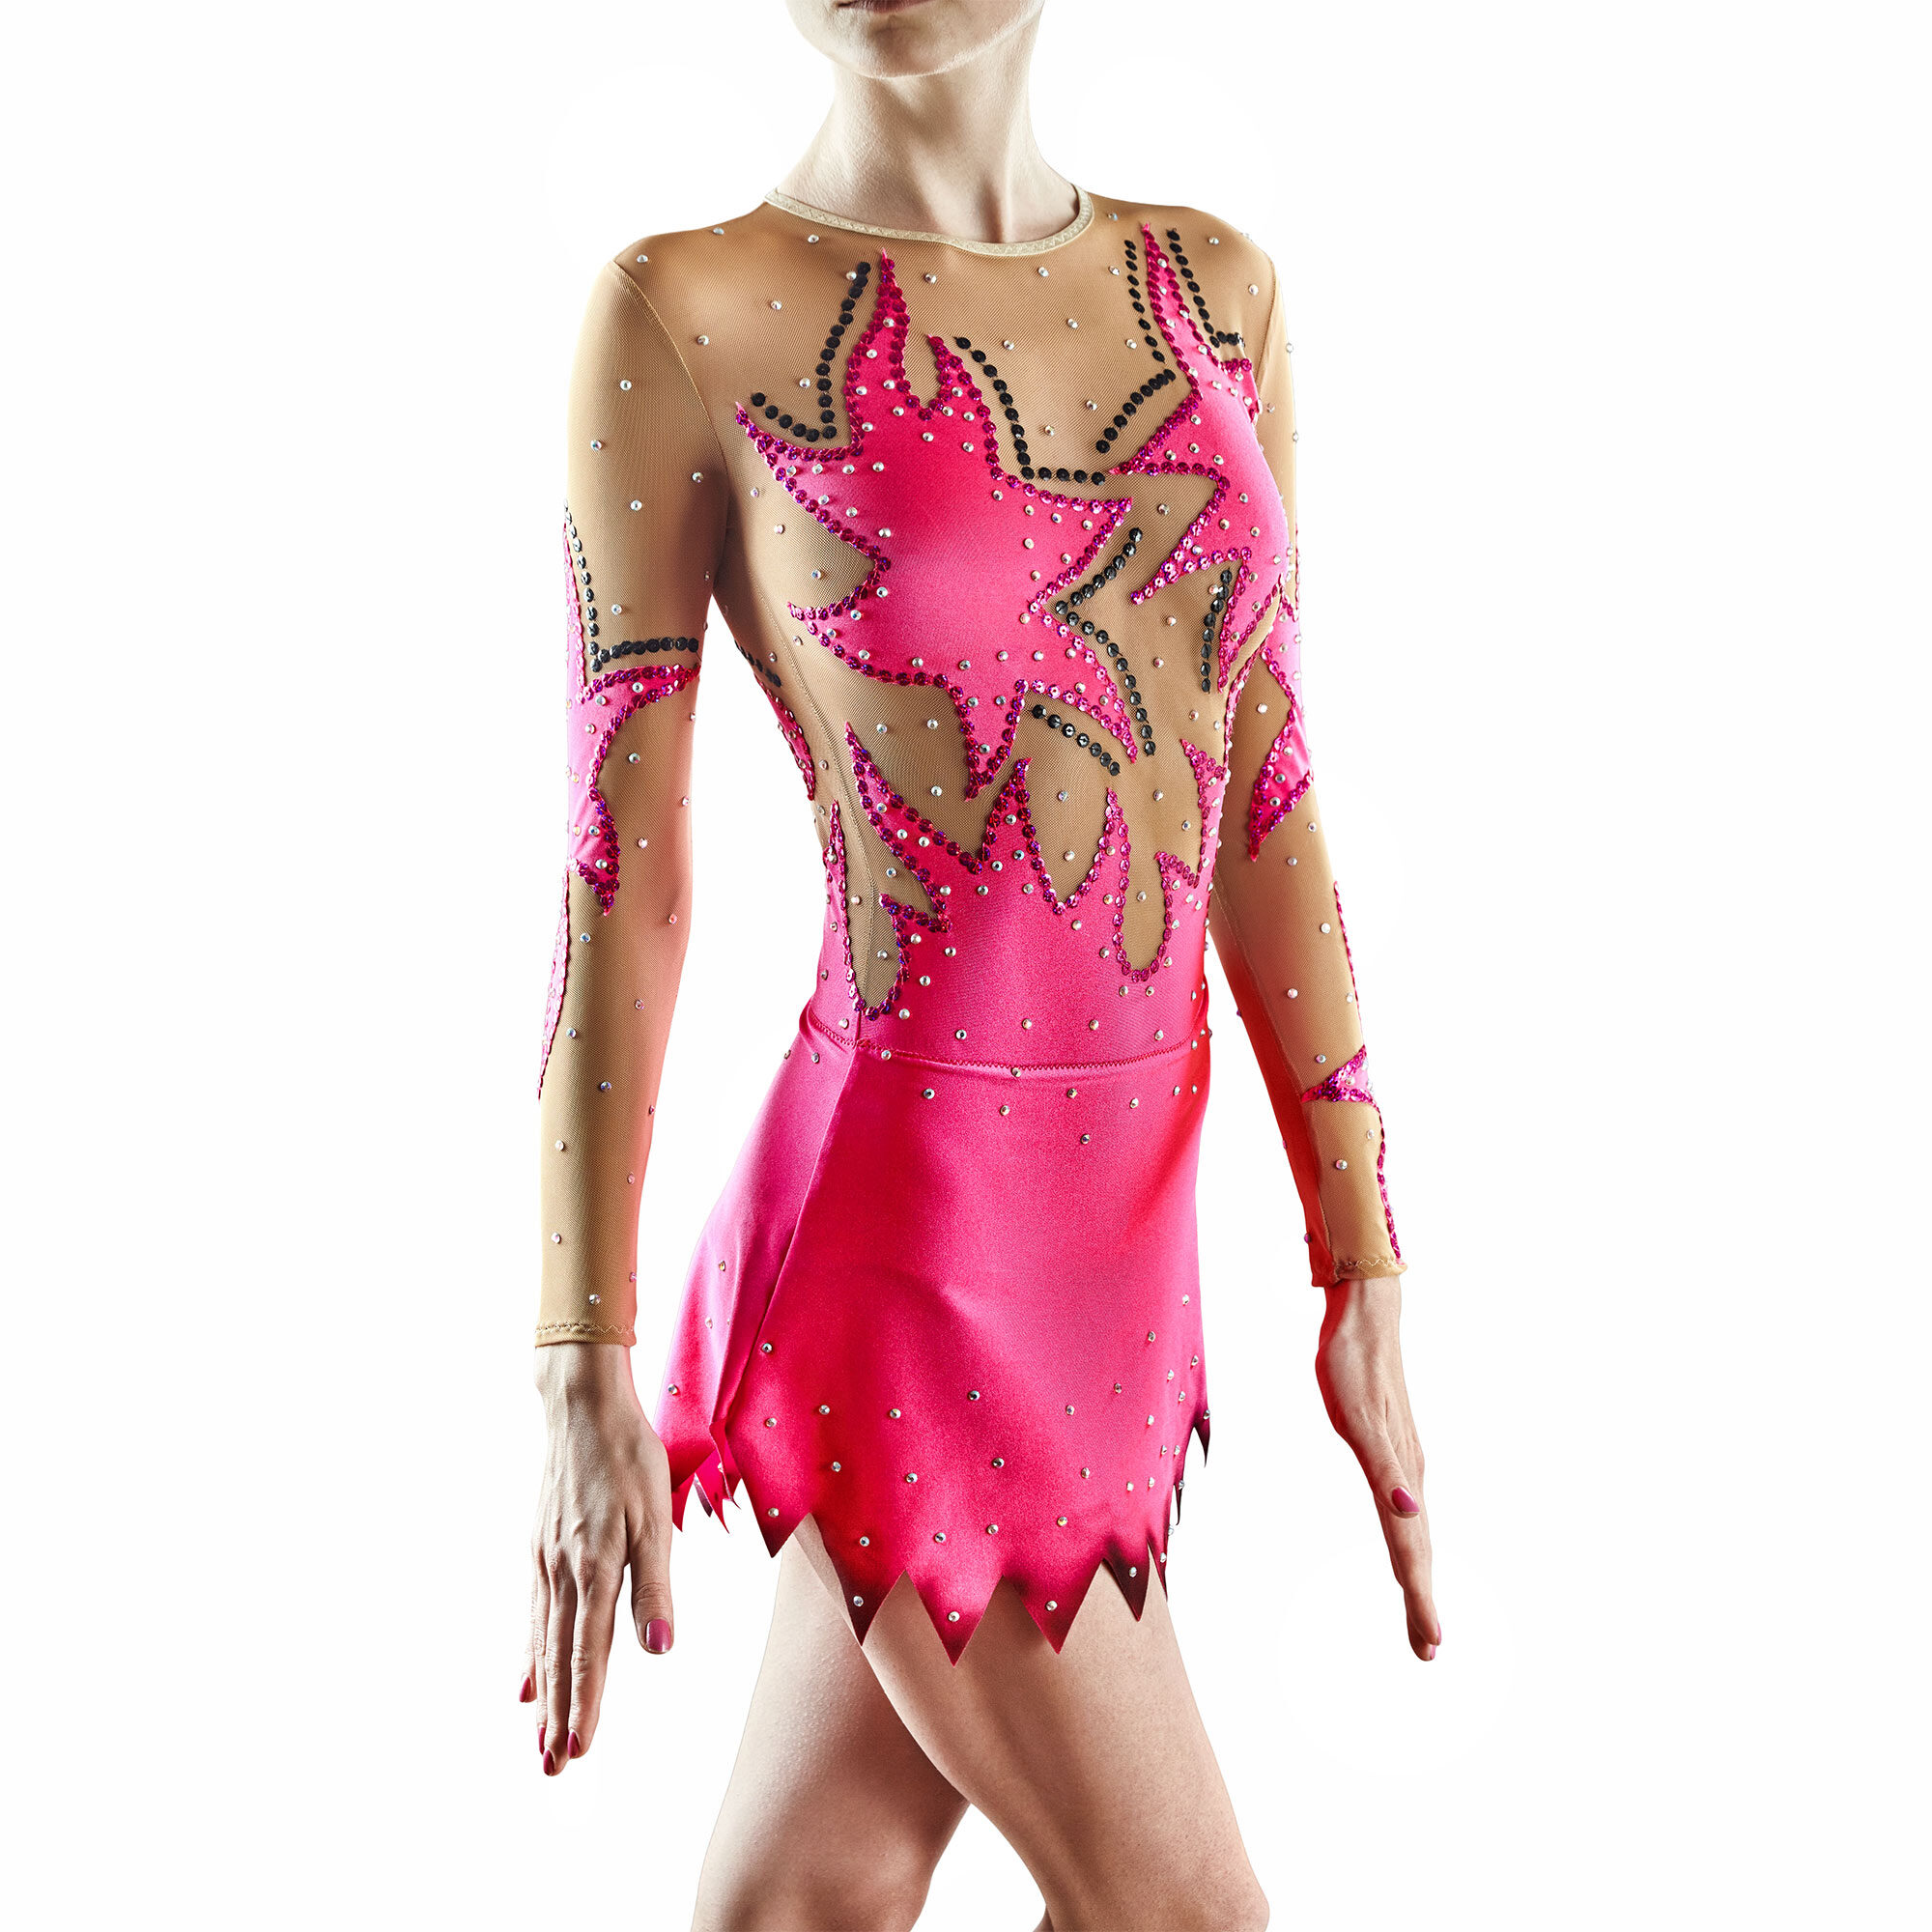 Coral Rhythmic Gymnastics Leotard 168 for competitions